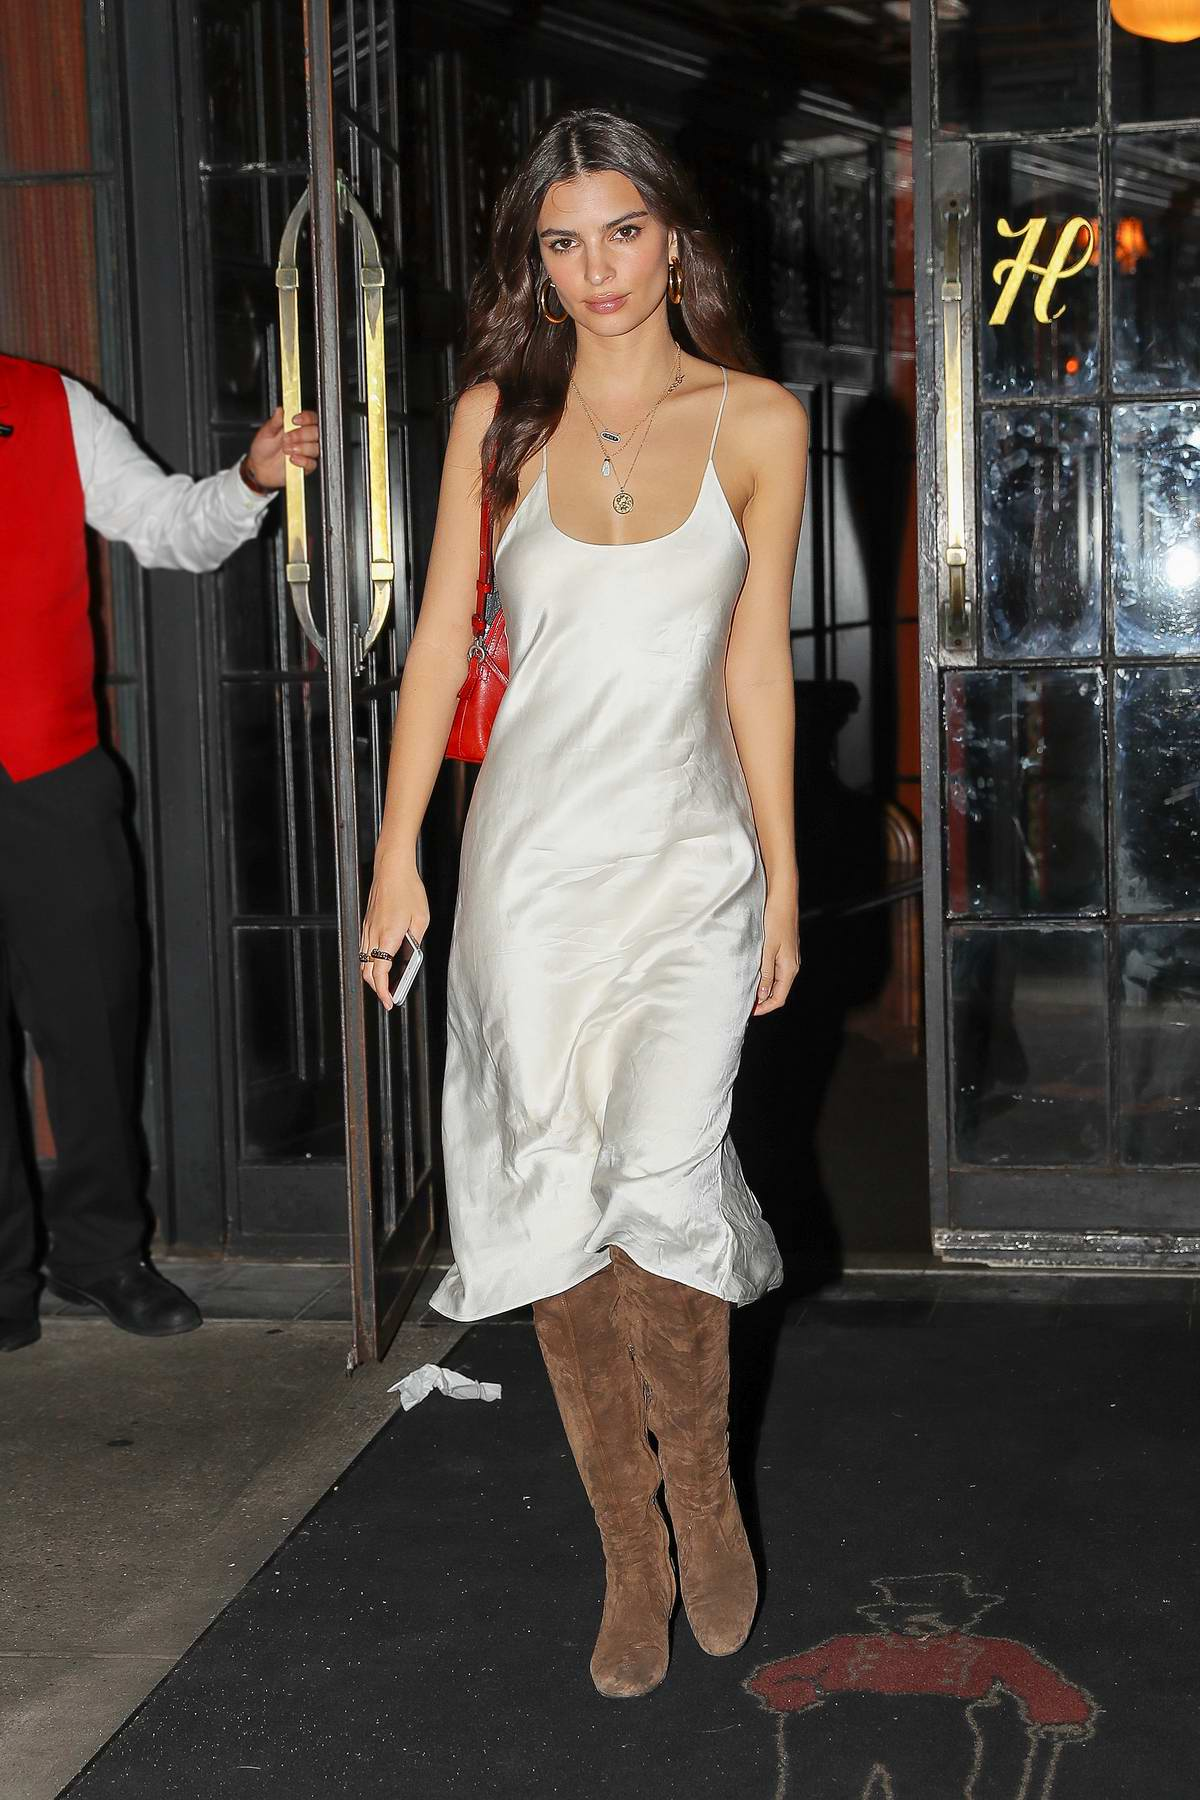 217b127ee910 emily ratajkowski looks radiant in a white slip dress as stepping ...